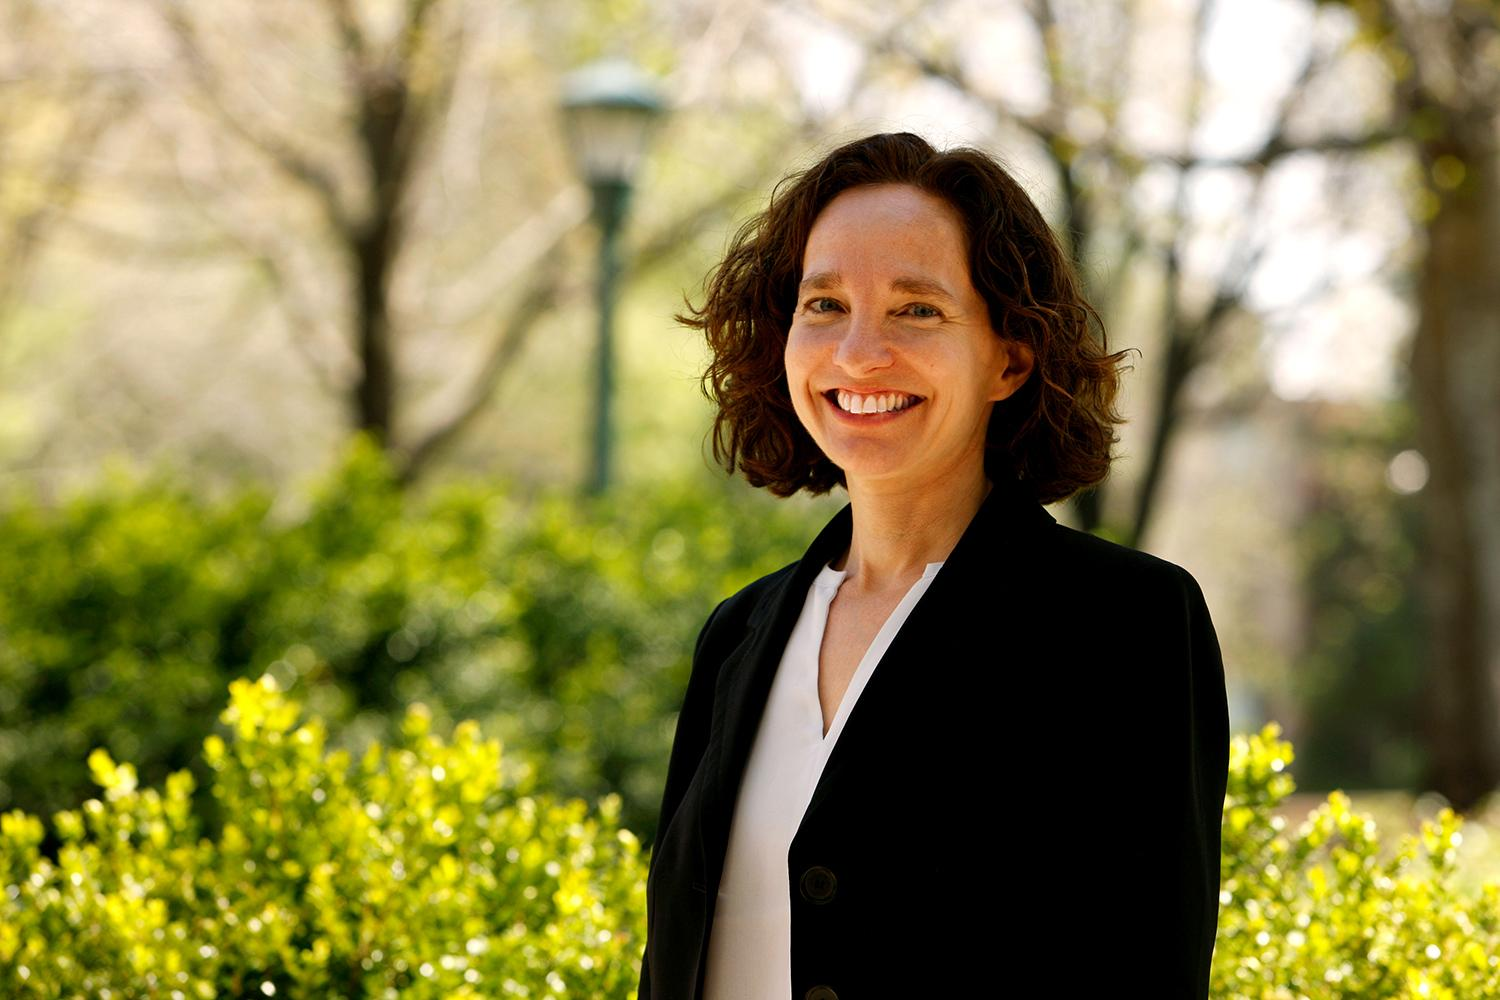 Risa Goluboff is the first woman named to the deanship in the almost 200-year history of the Law School.